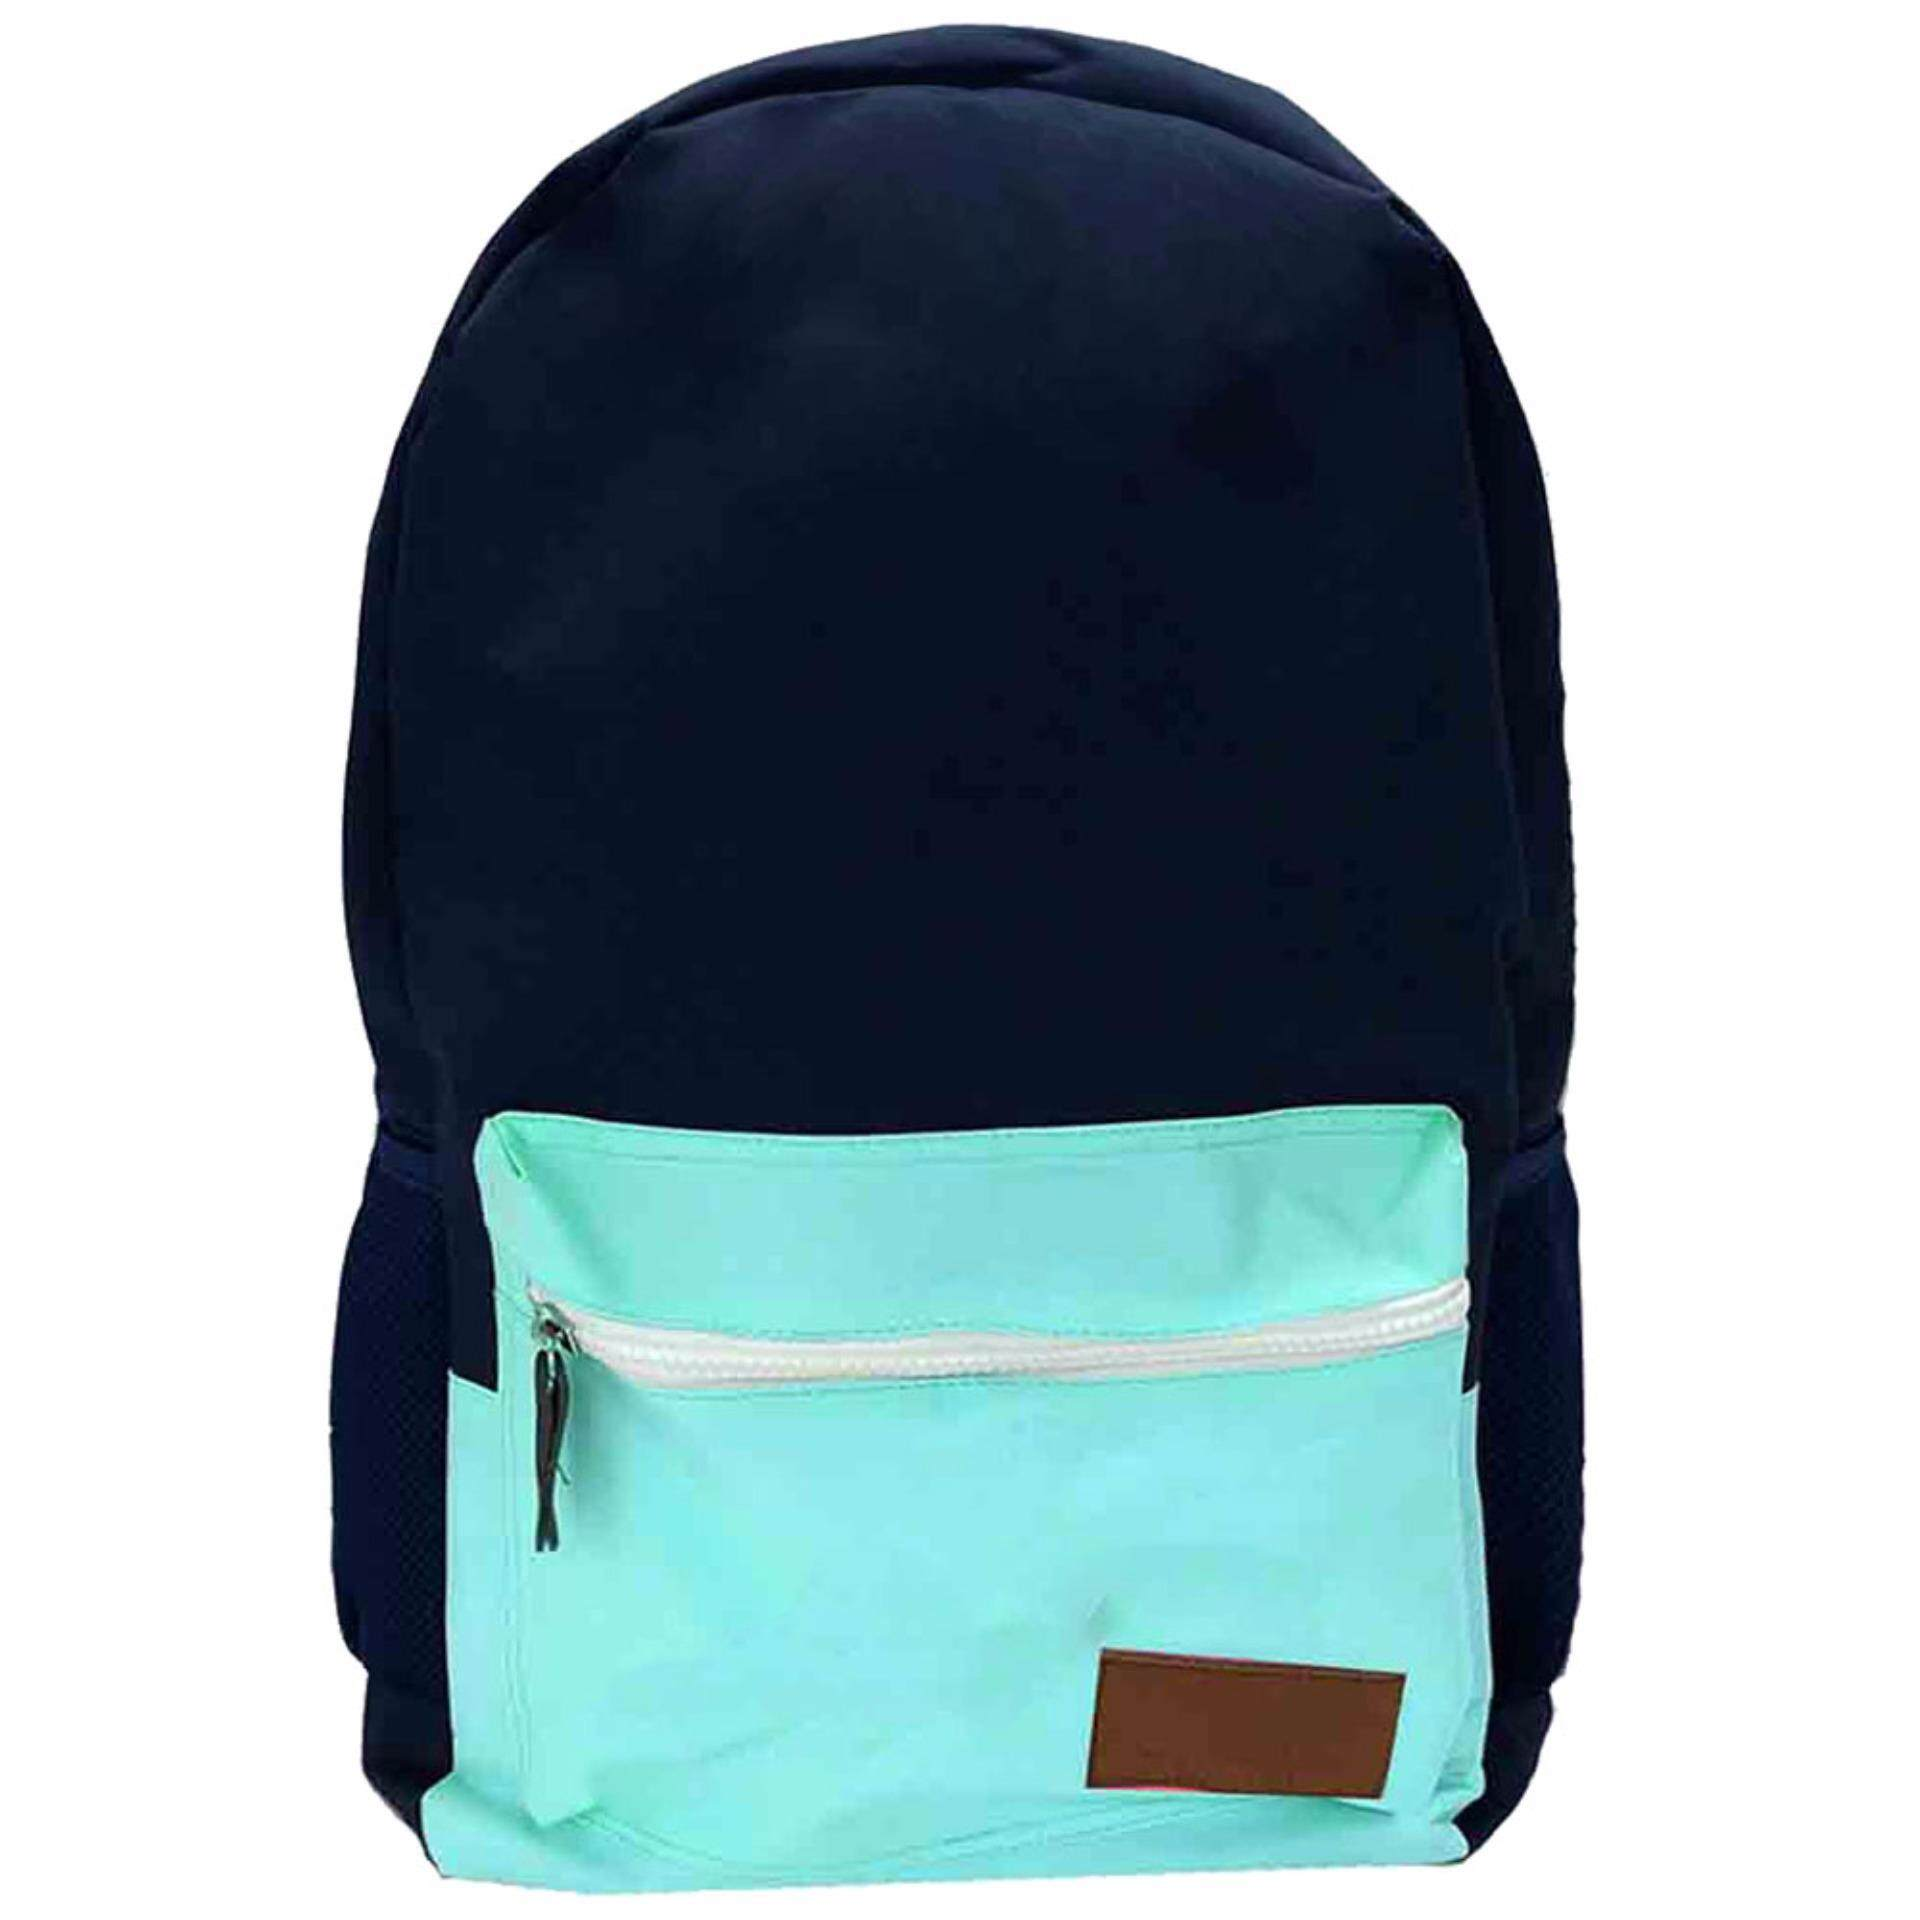 Haitop HB1553 18'' Casual Backpack (Navy)